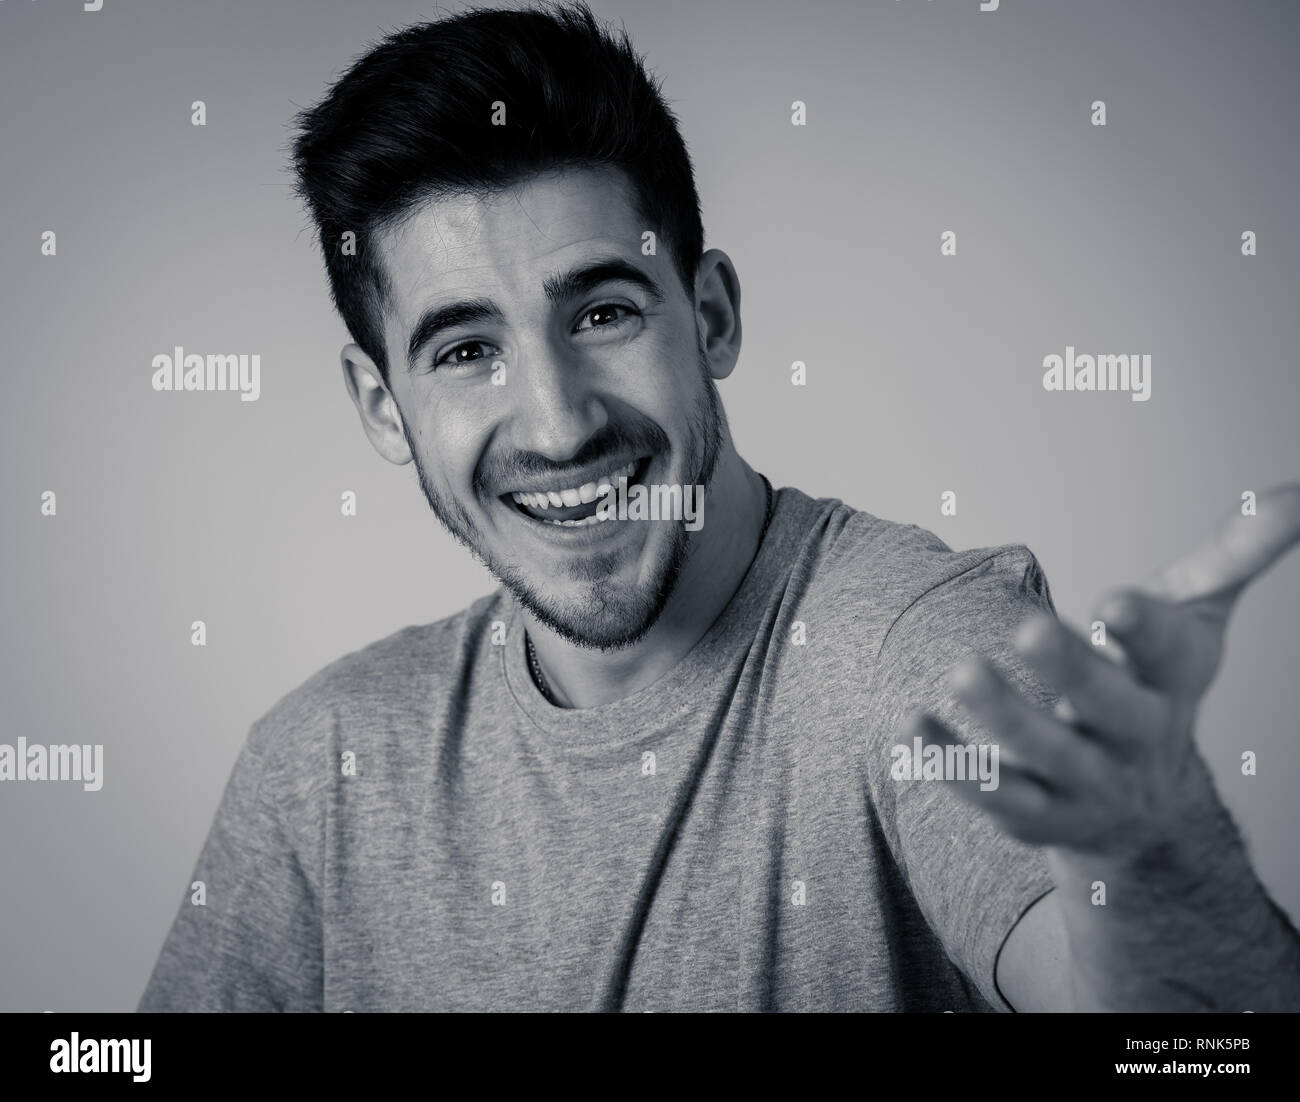 Portrait of young man celebrating achievement, a football goal, wining the lottery or having great success, shouting and gesturing in happiness and di - Stock Image